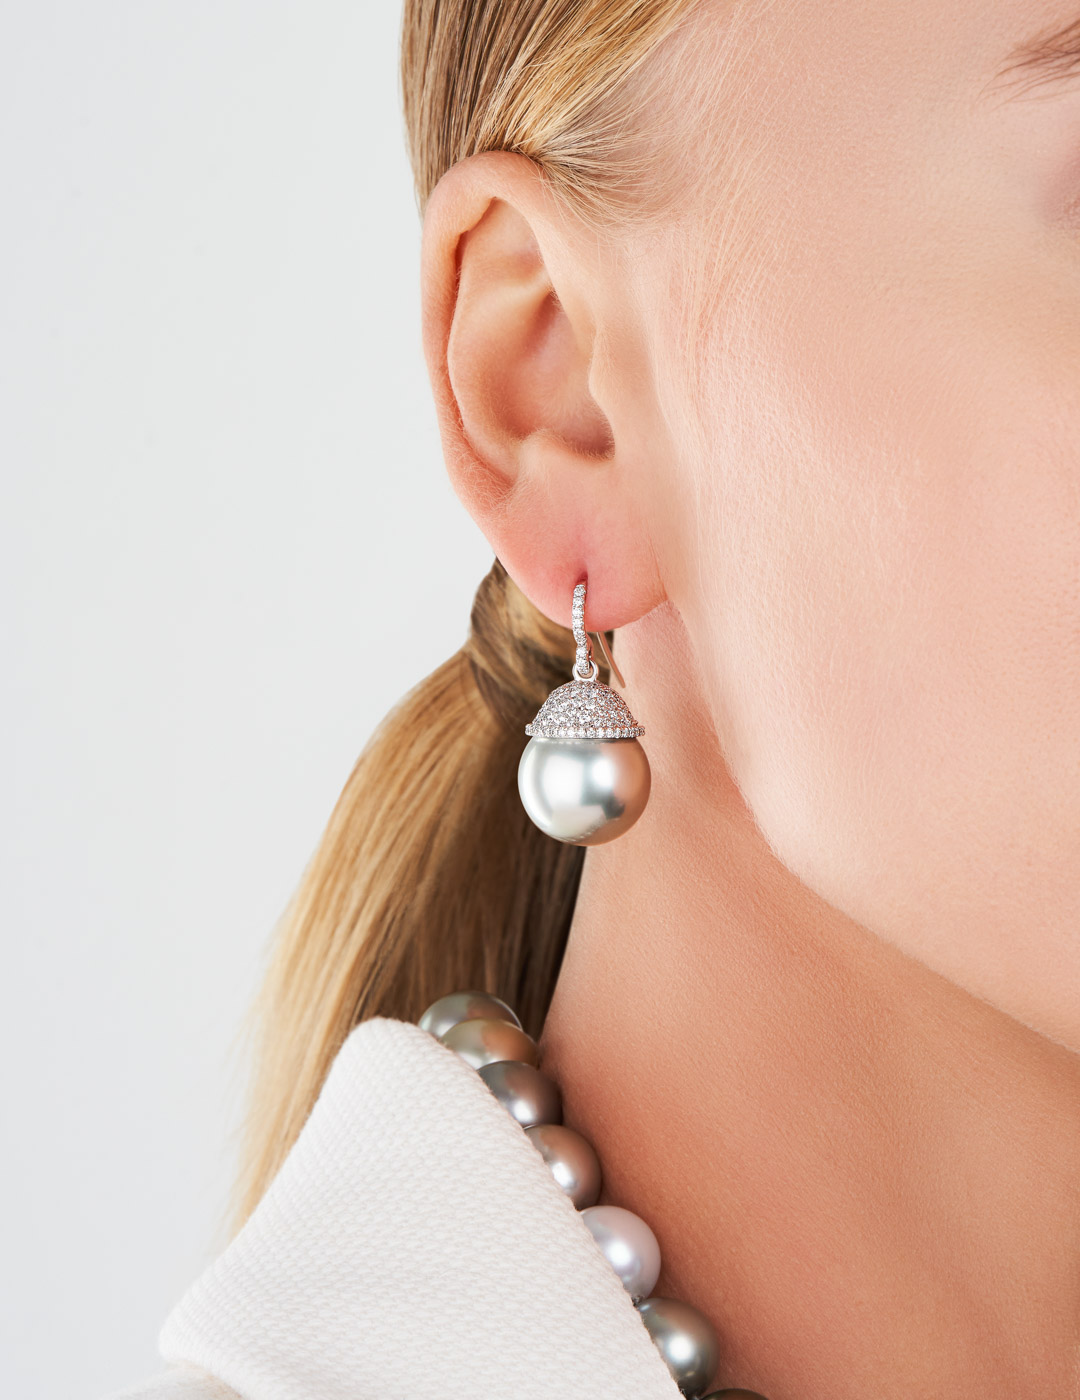 mish_products_earrings_PaveDome-FW-Tah-ER-2